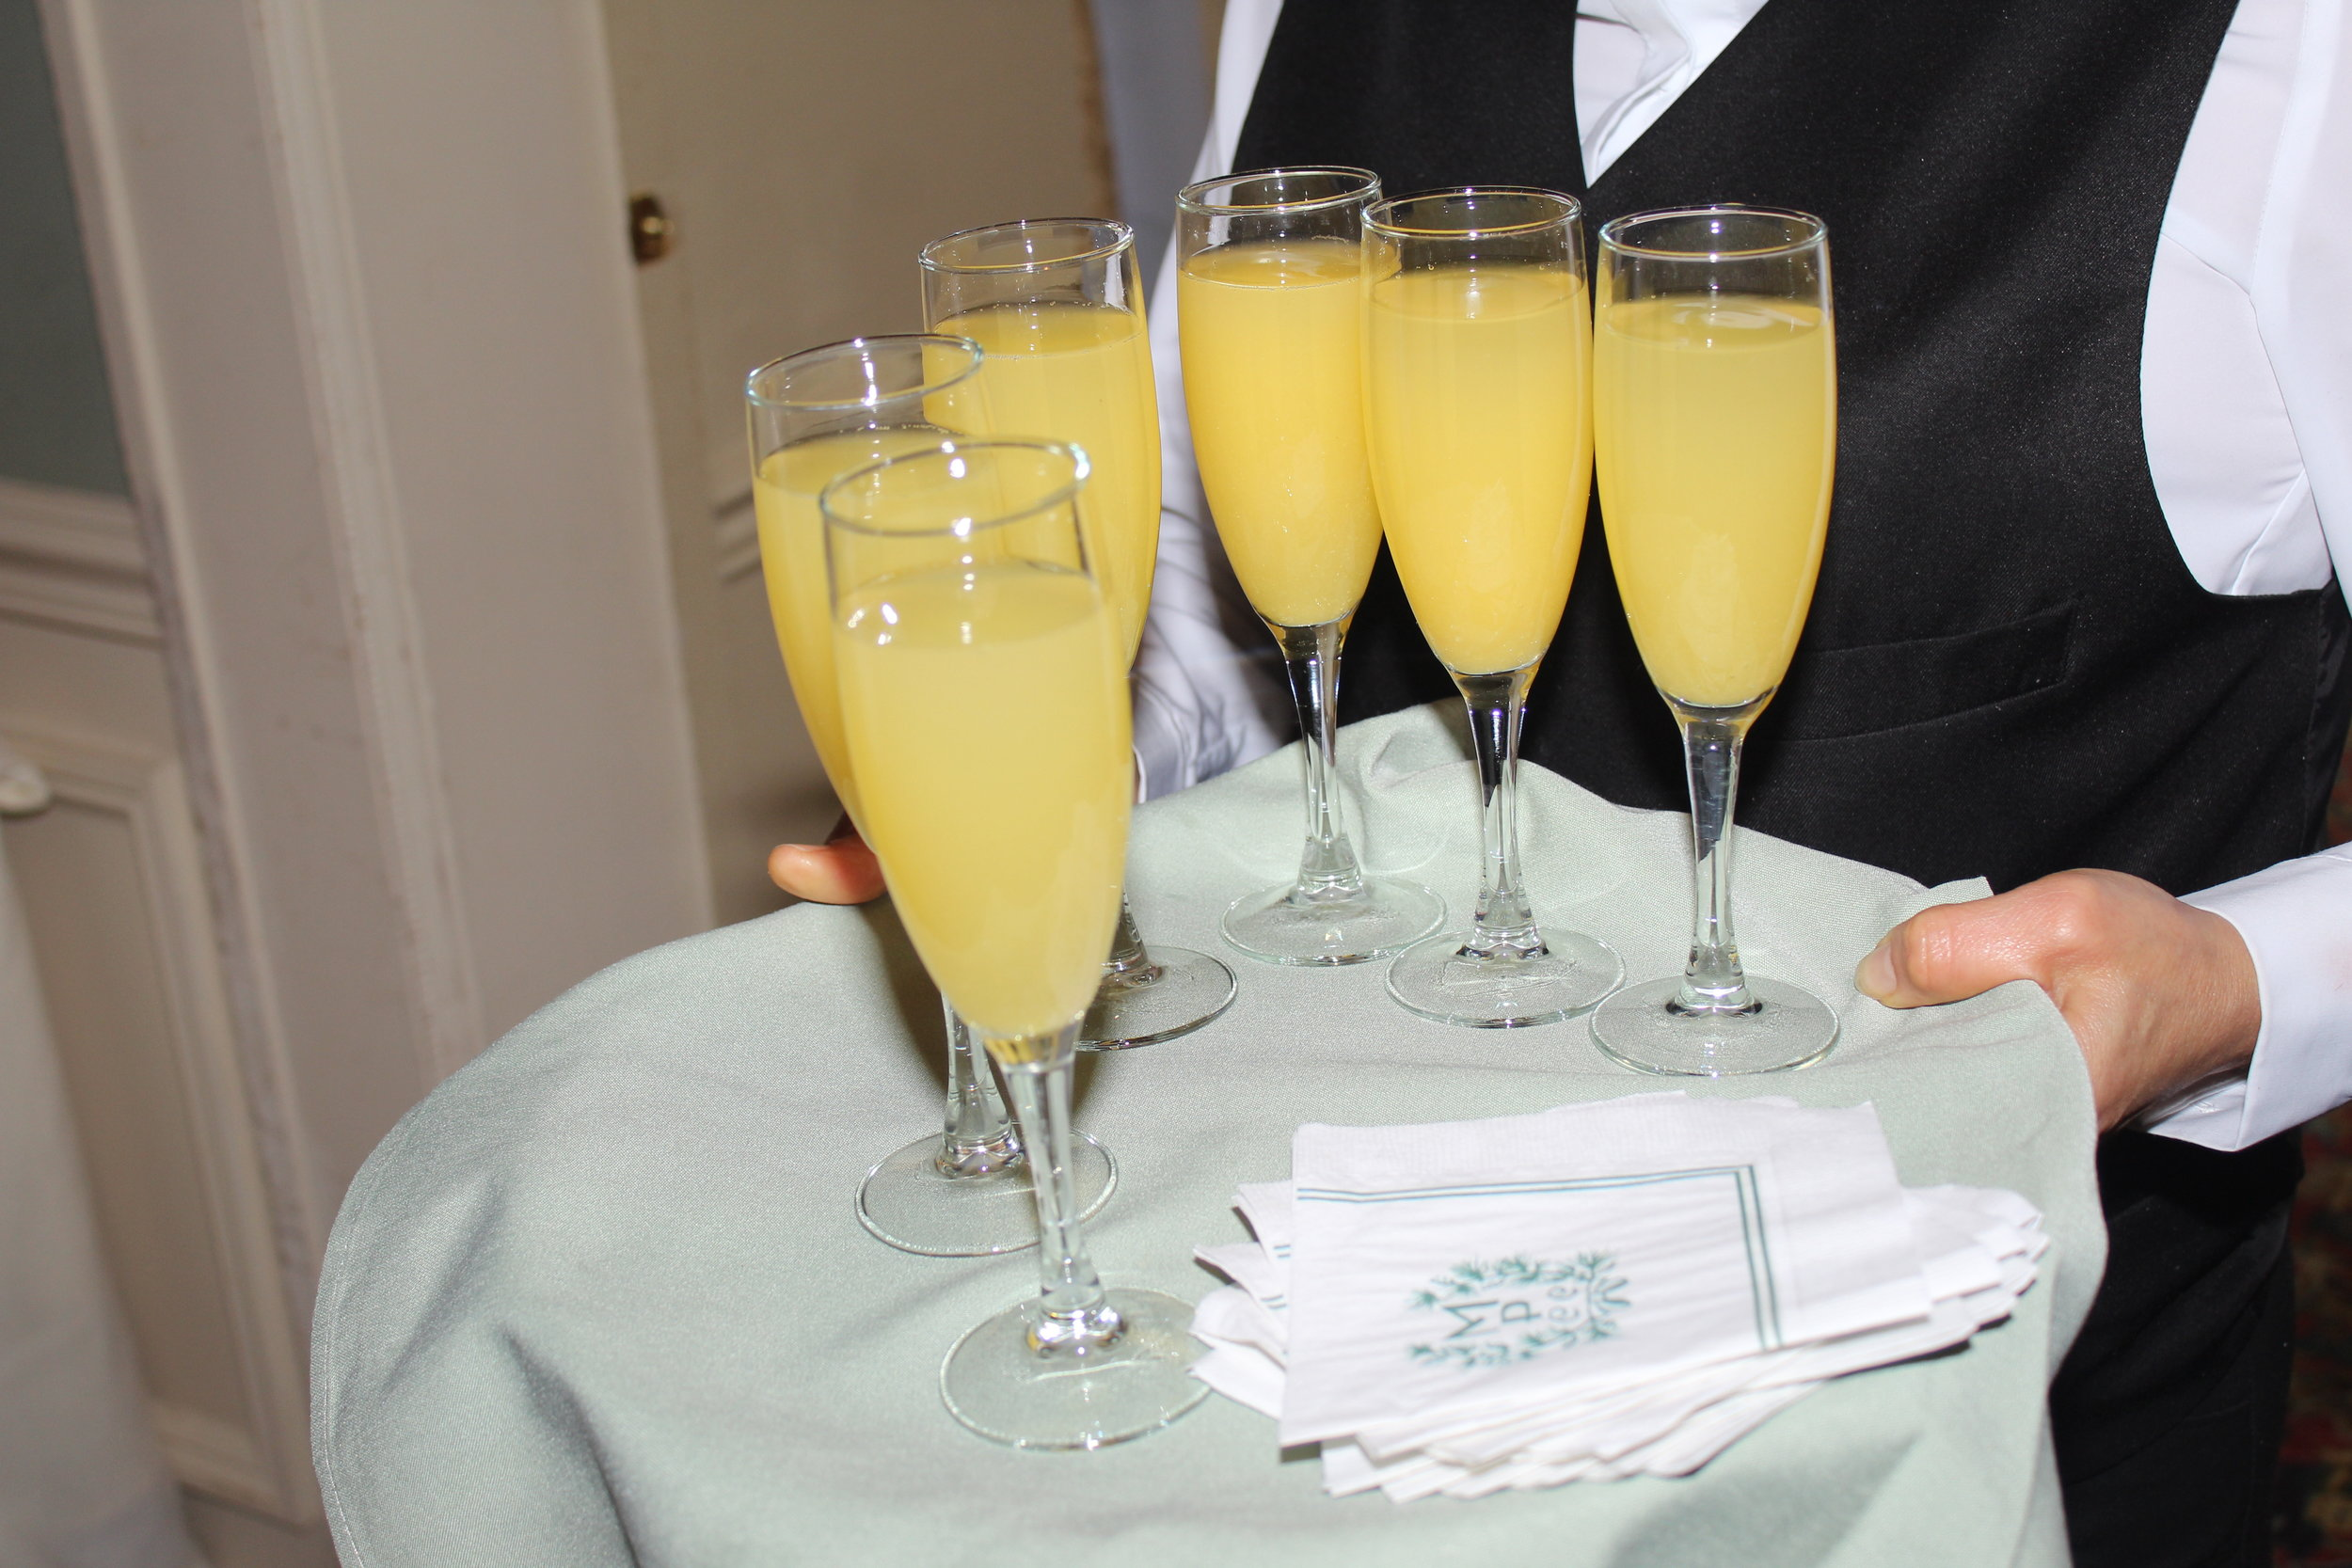 Guests were offered Mimosas